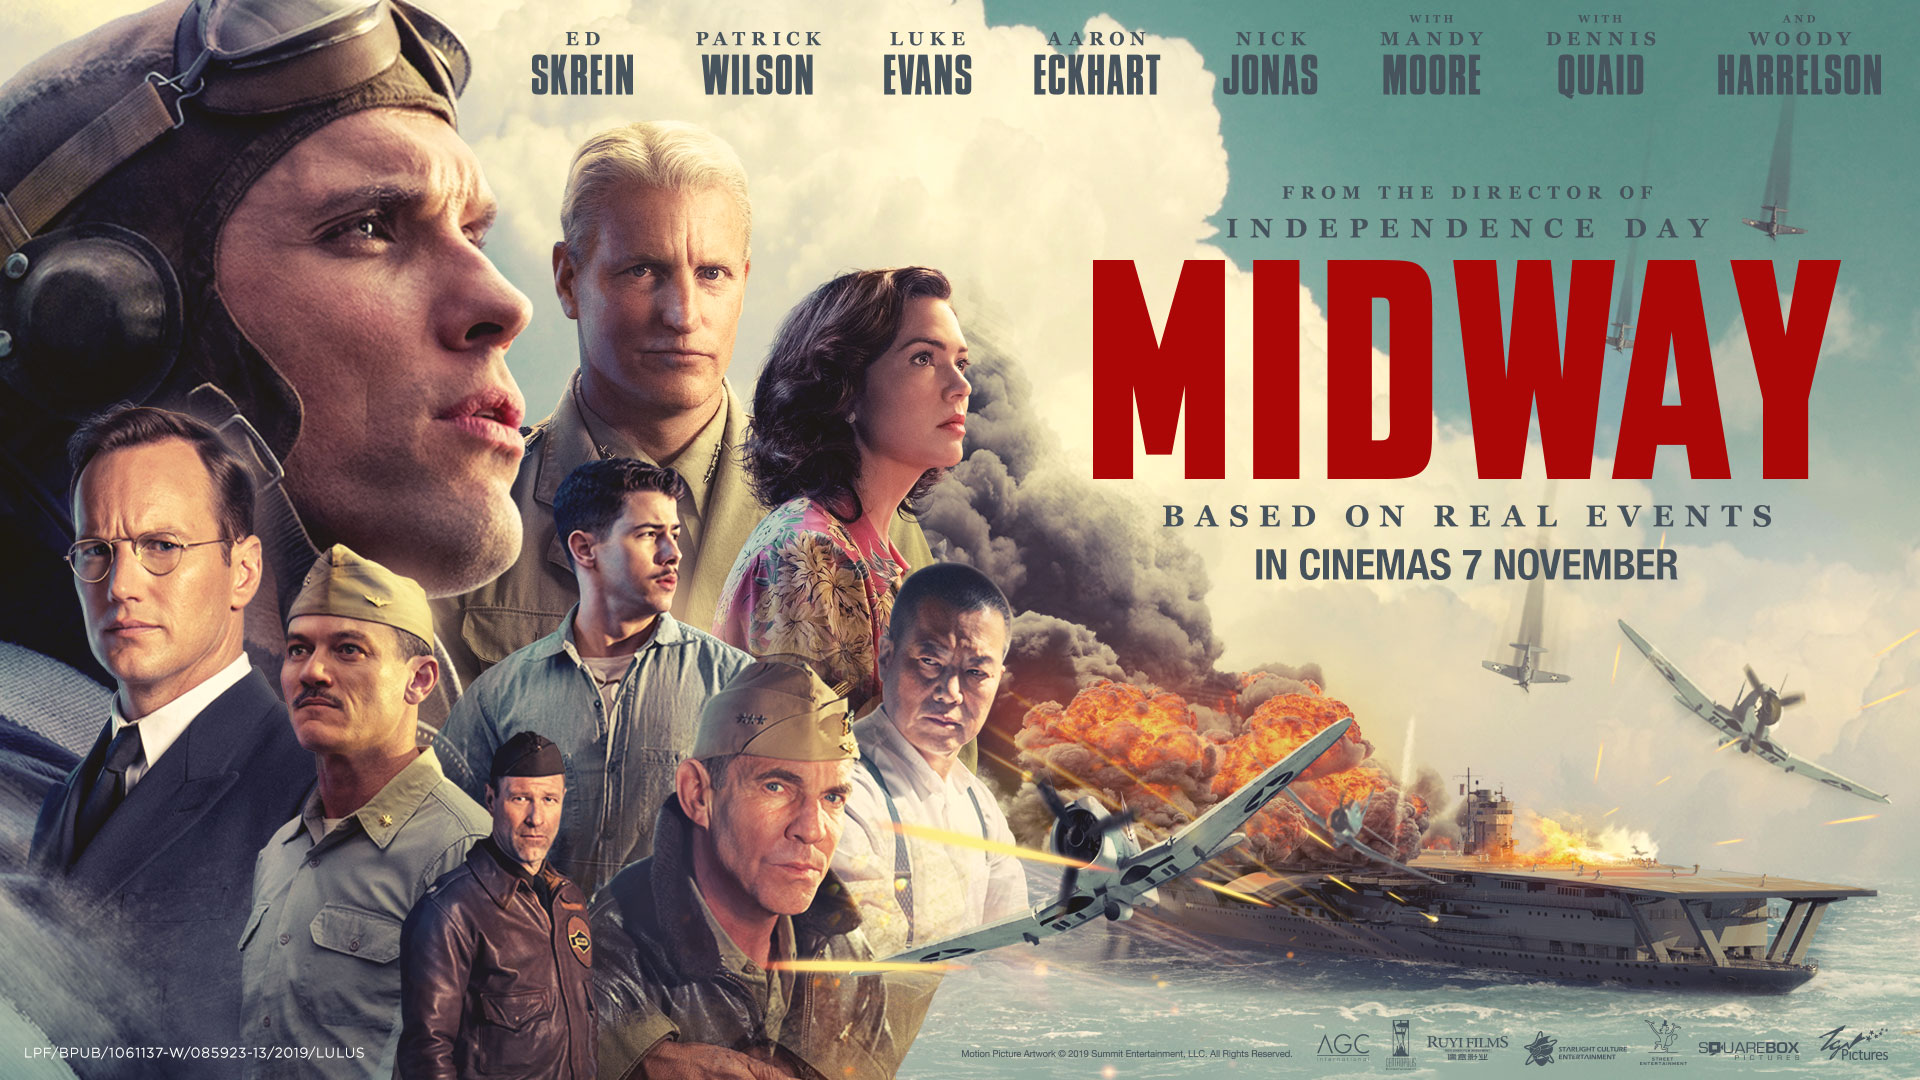 midway_international-poster_1920x1080_02.jpg